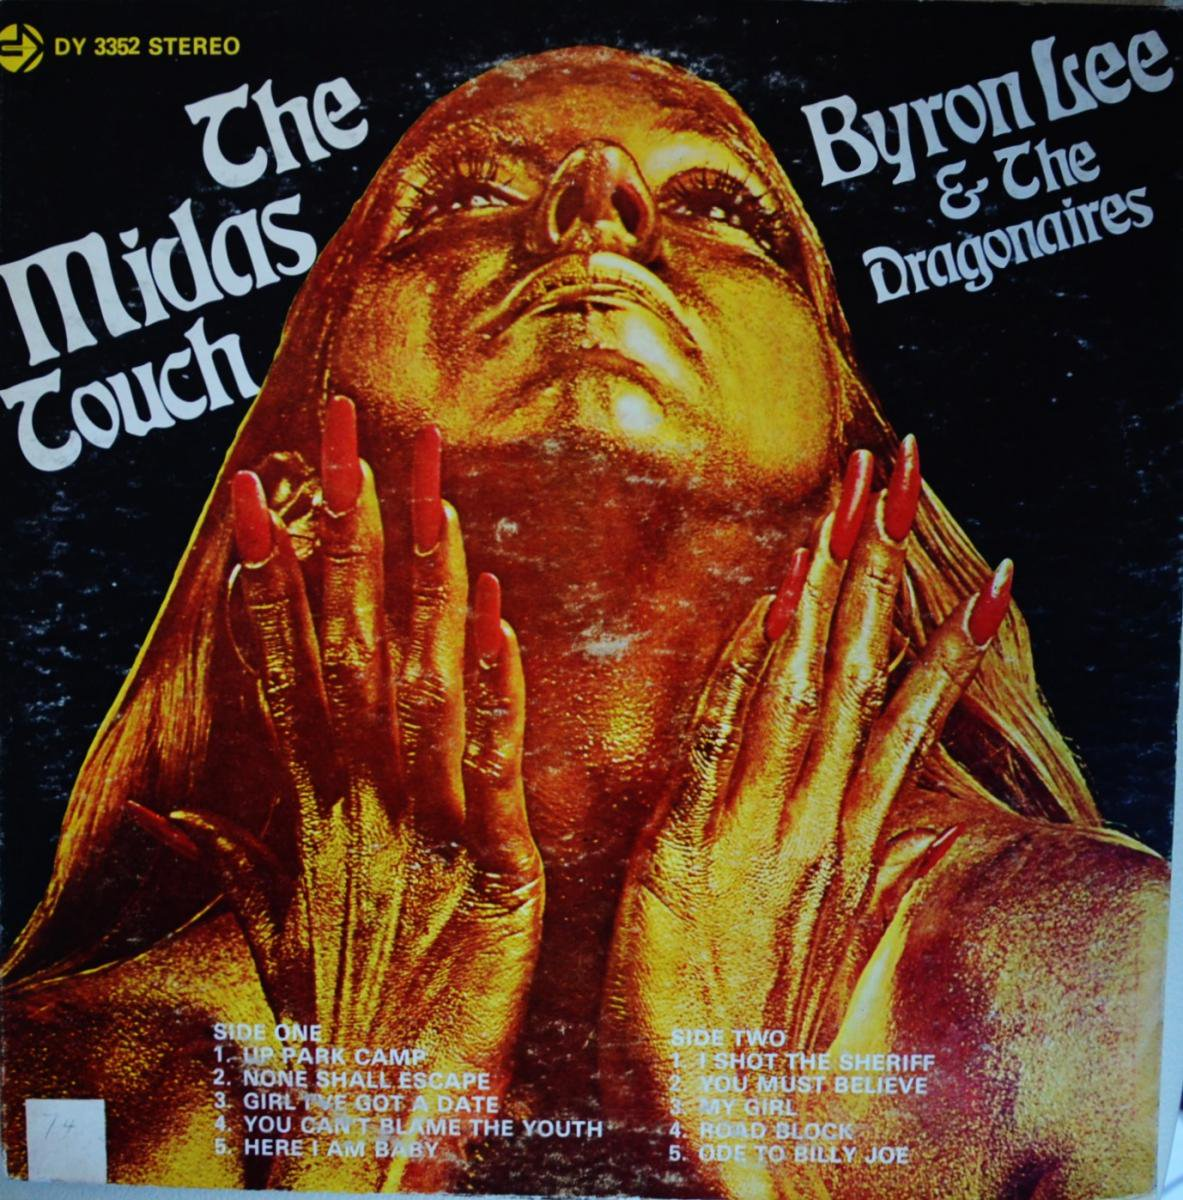 BYRON LEE AND THE DRAGONAIRES / THE MIDAS TOUCH (LP)